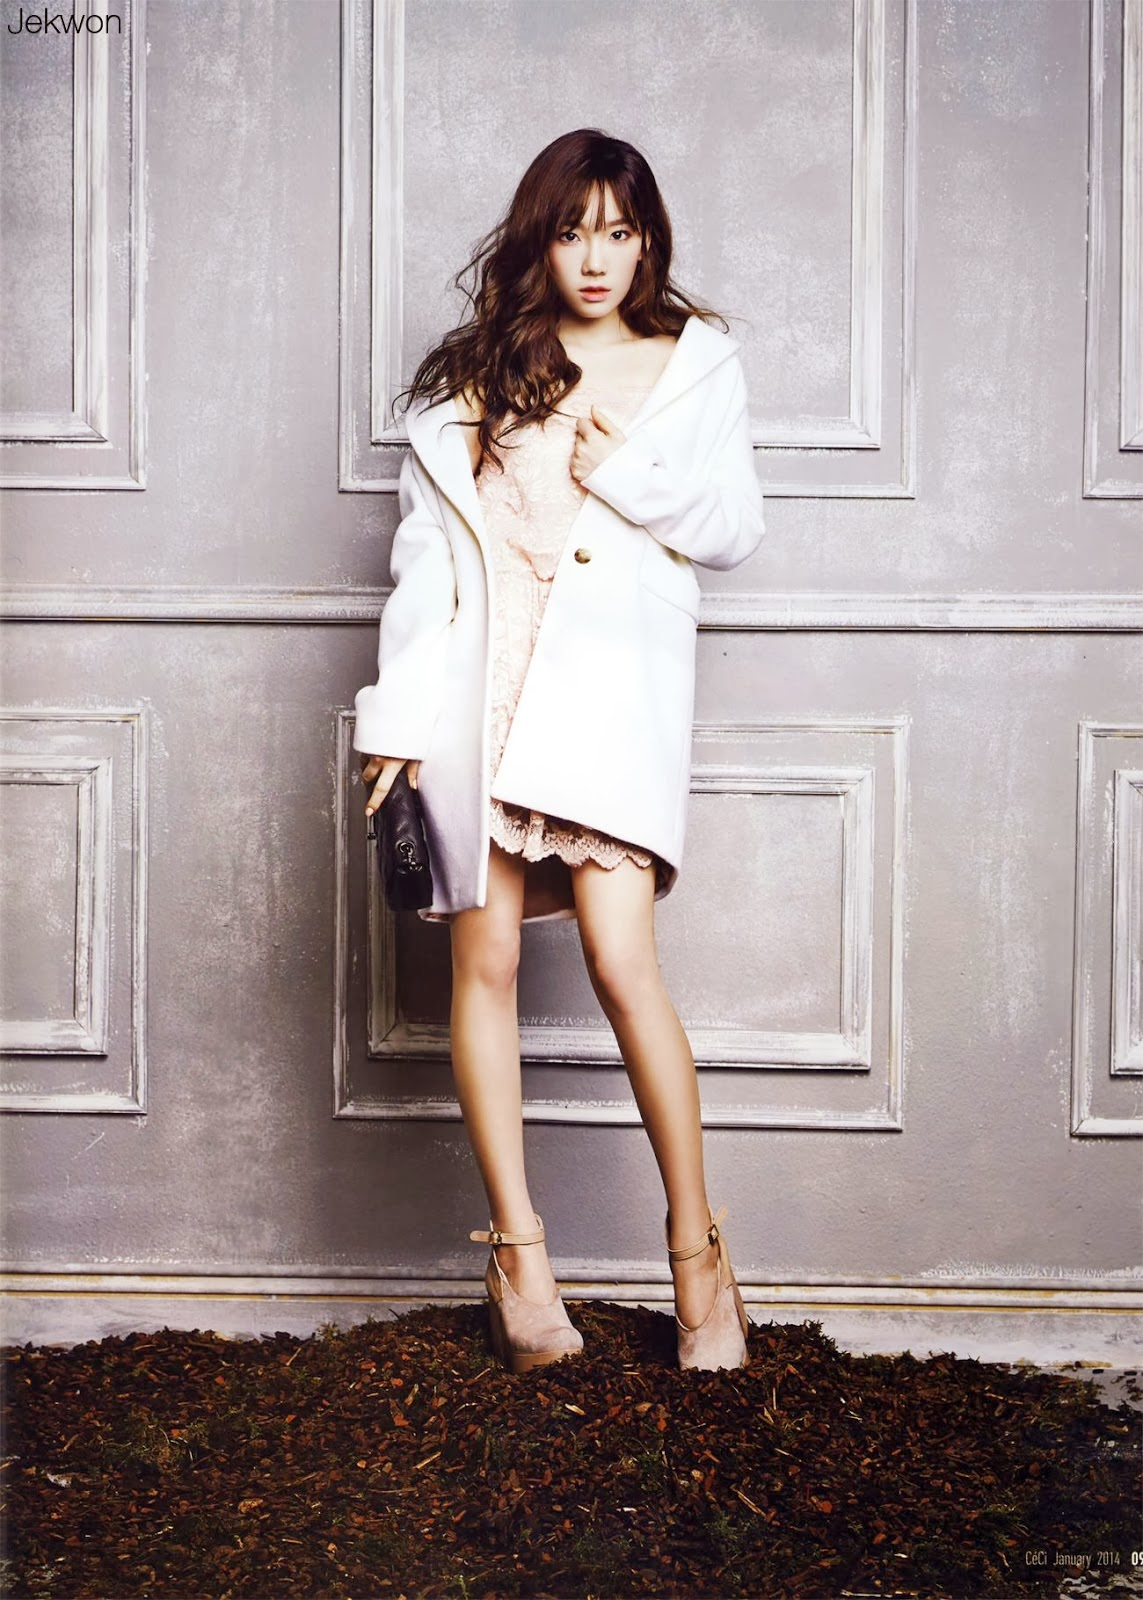 SNSD Taeyeon - CéCi Magazine January 2014 Issue Scans ...